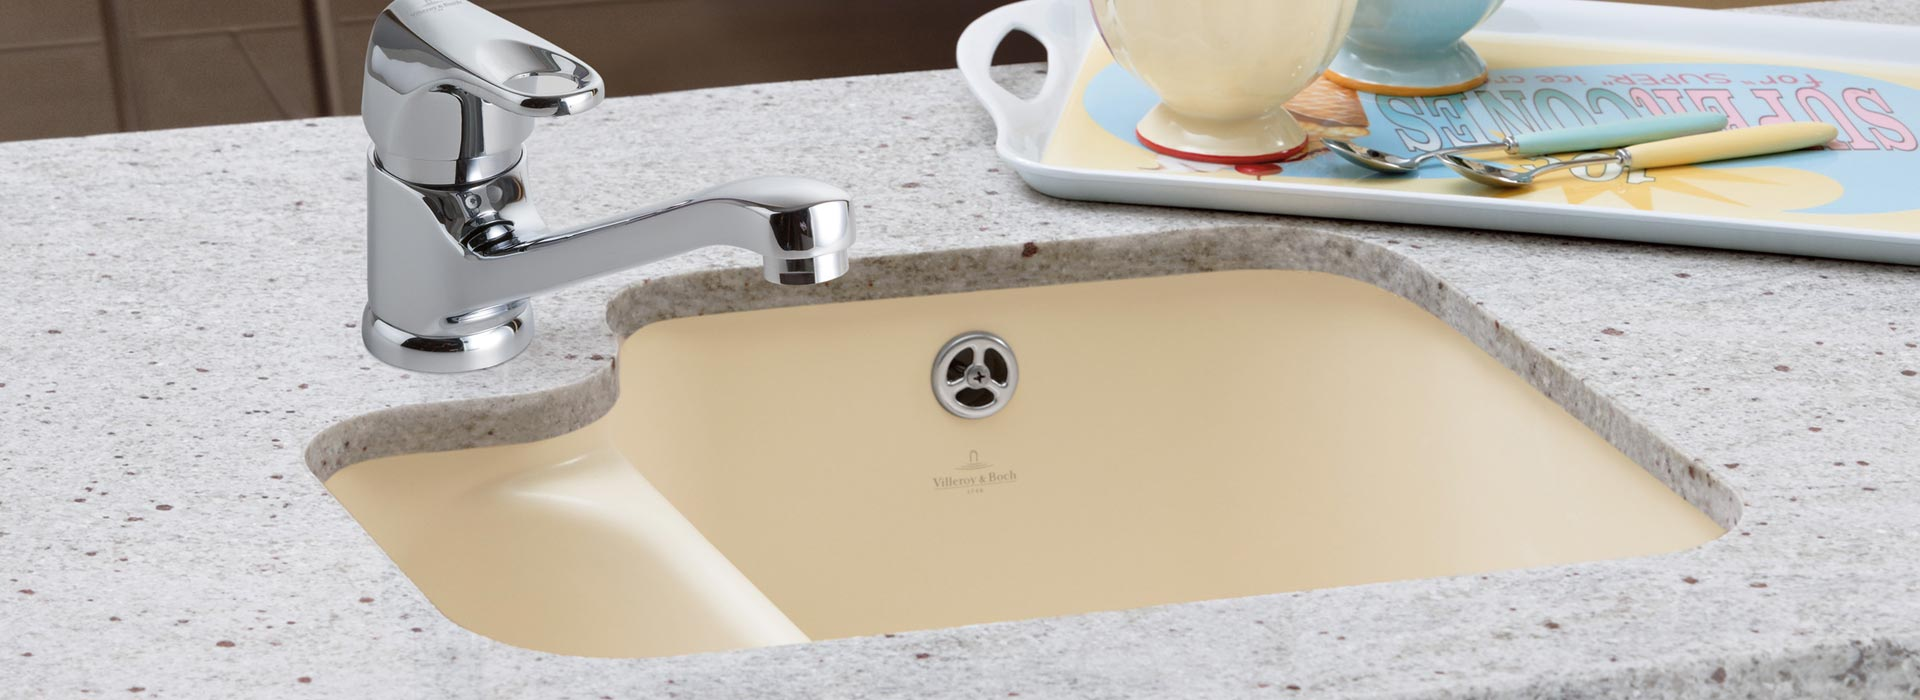 Premium-quality undercounter sink from Villeroy & Boch